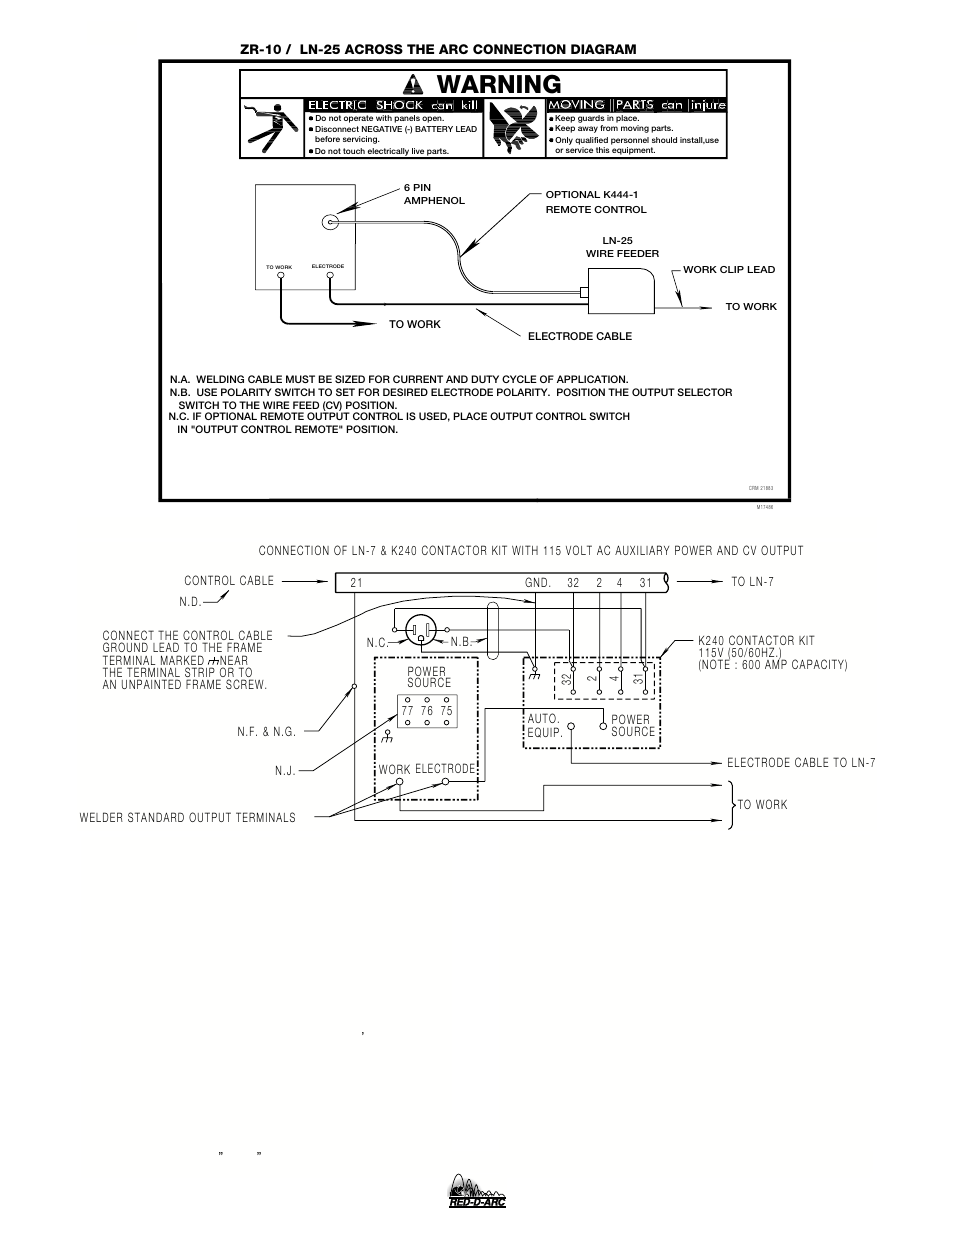 File Name  Red Arc Zr10 Wiring Diagram